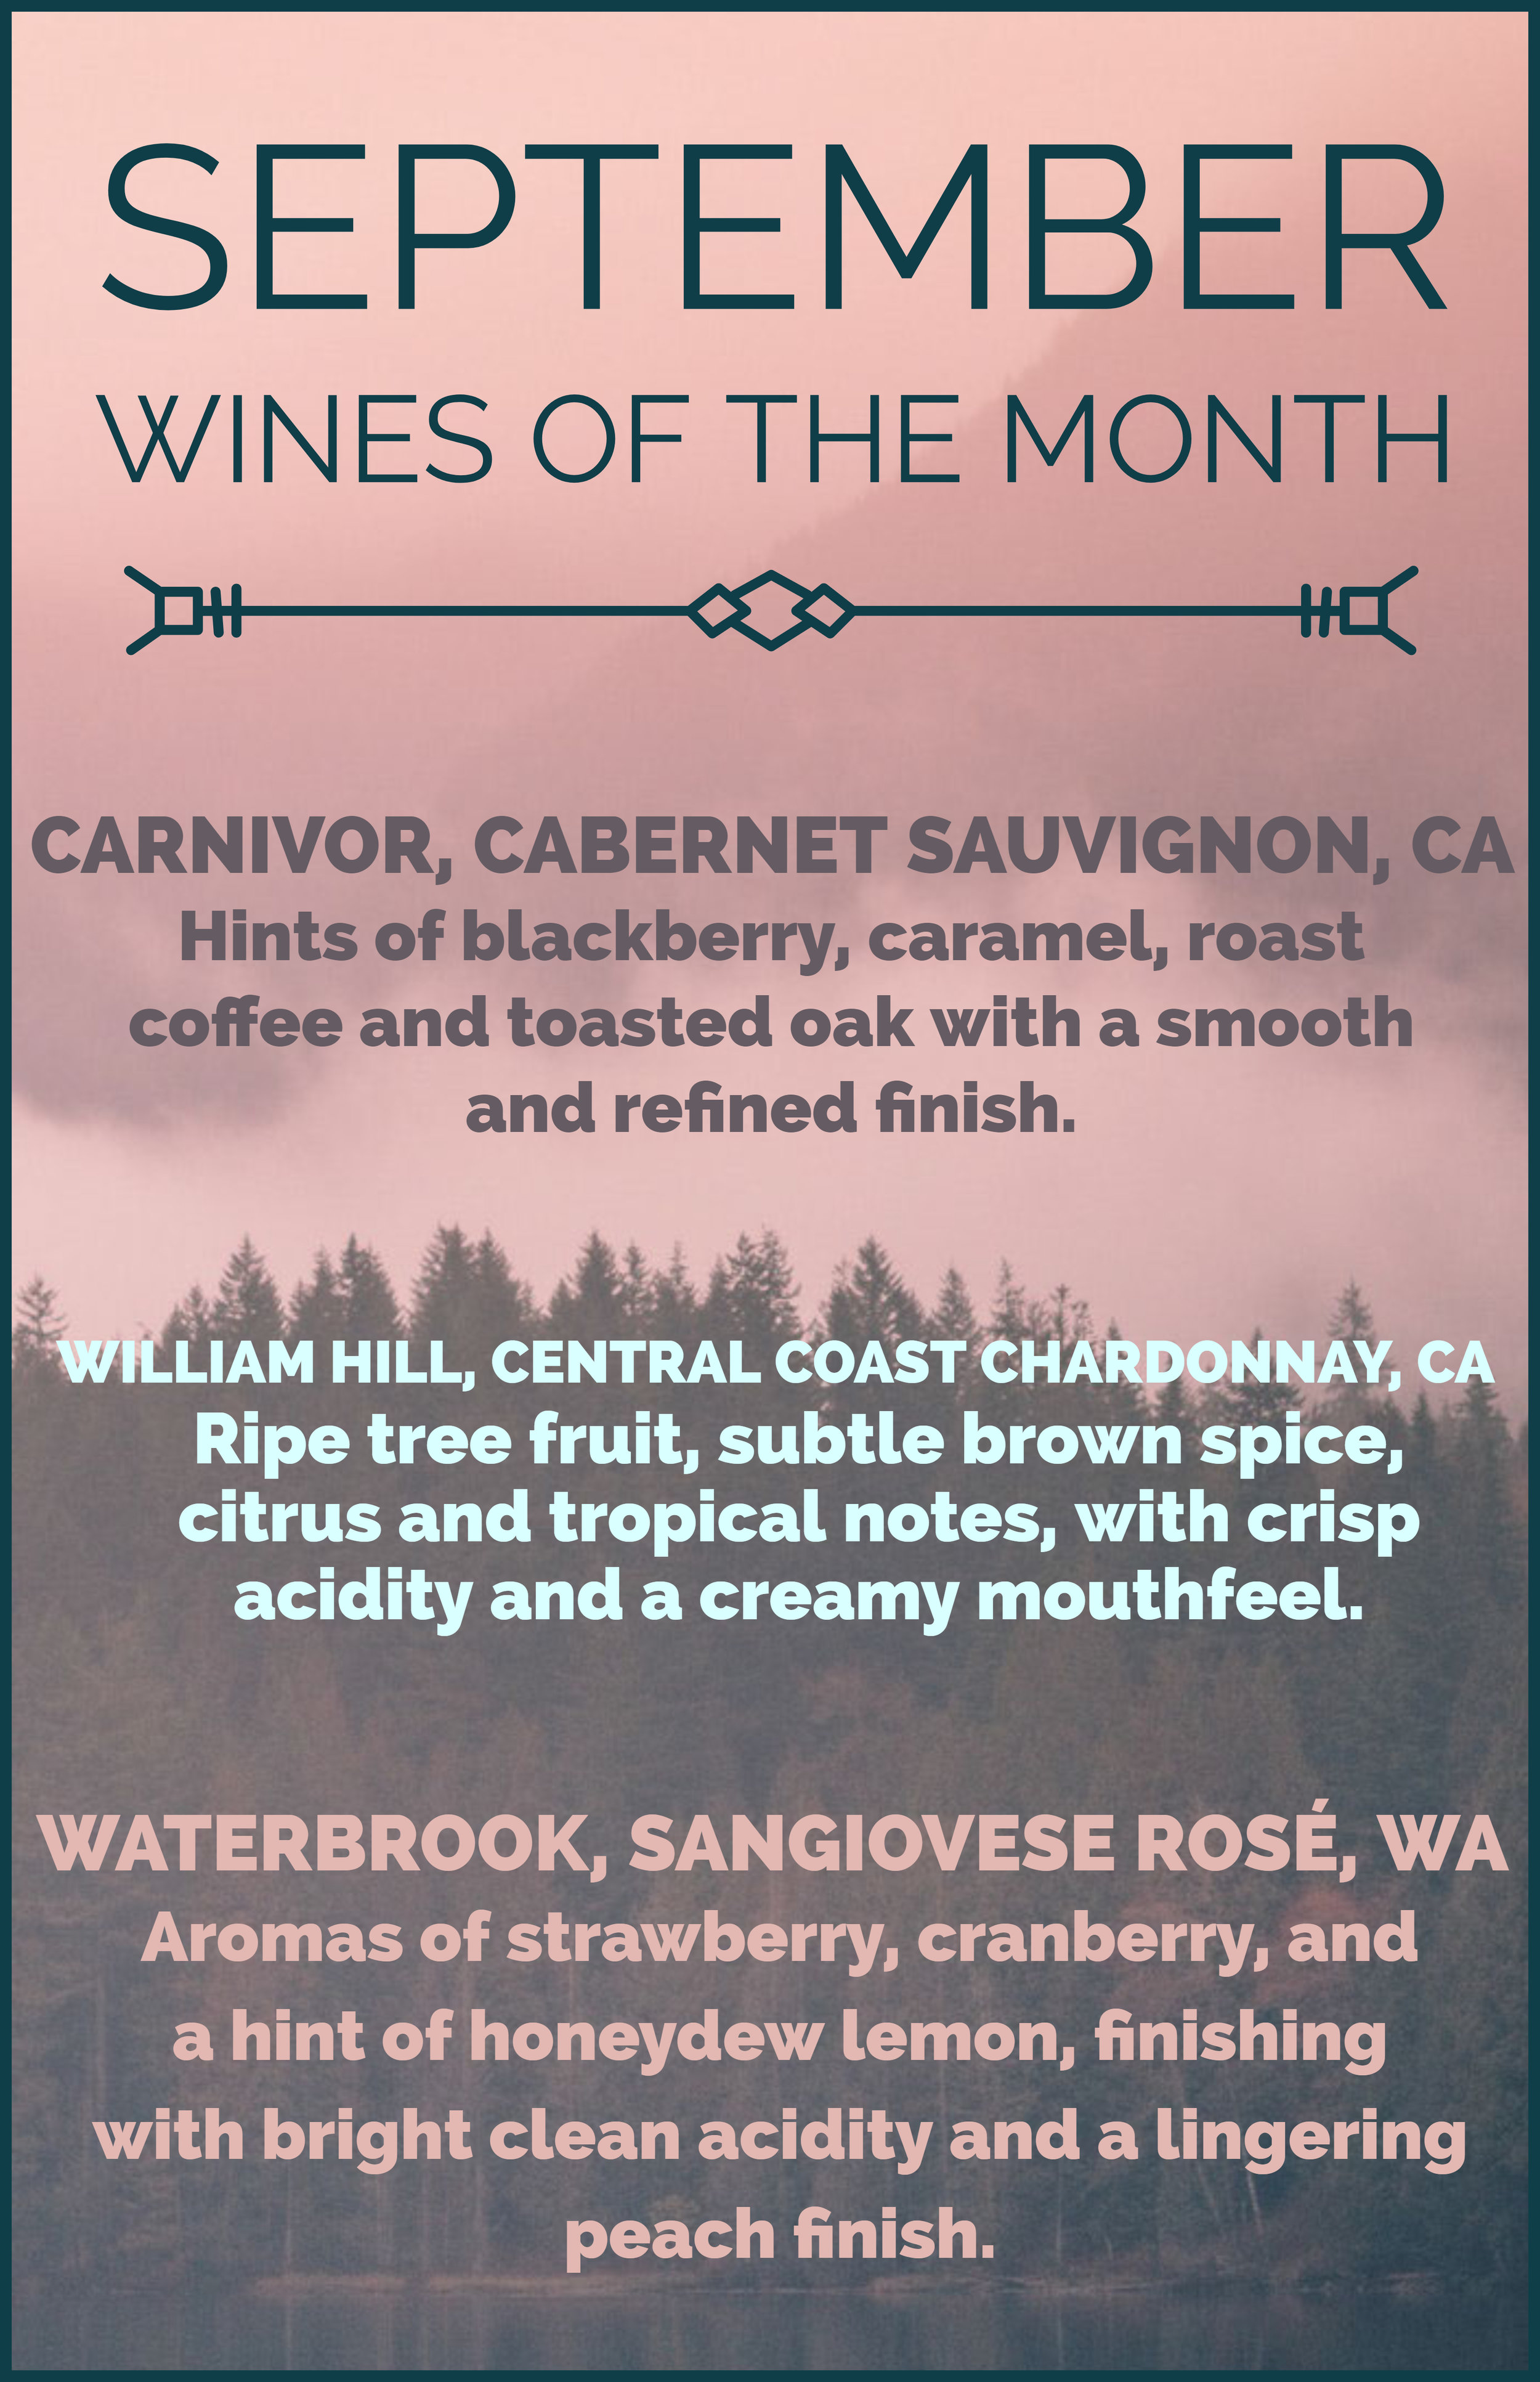 Red -    Carnivor, Cabernet Sauvignon, CA -  Hints of blackberry, caramel, roast coffee and toasted oak with a smooth and refined finish.  White -  William Hill, Central Coast Chardonnay, CA - Ripe tree fruit, subtle brown spice, citrus and tropical notes, with crisp acidity and a creamy mouthfeel.  Rosé -  Waterbrook, Sangiovese Rosé, WA - Aromas of strawberry, cranberry, and a hint of honeydew lemon, finishing with bright clean acidity and a lingering peach finish.